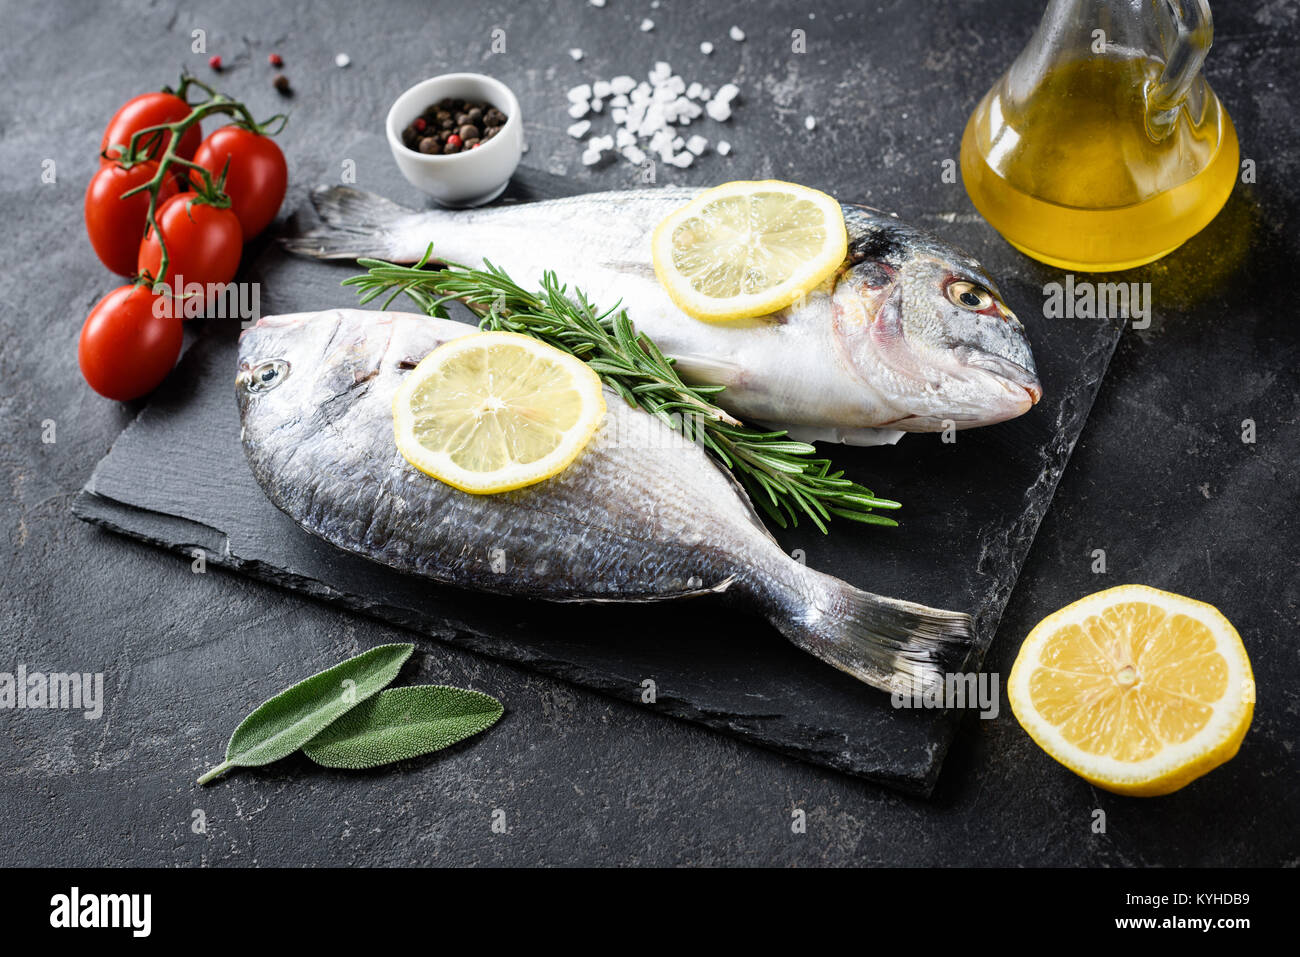 Raw fish fry stock photos raw fish fry stock images alamy for Frying fish in olive oil